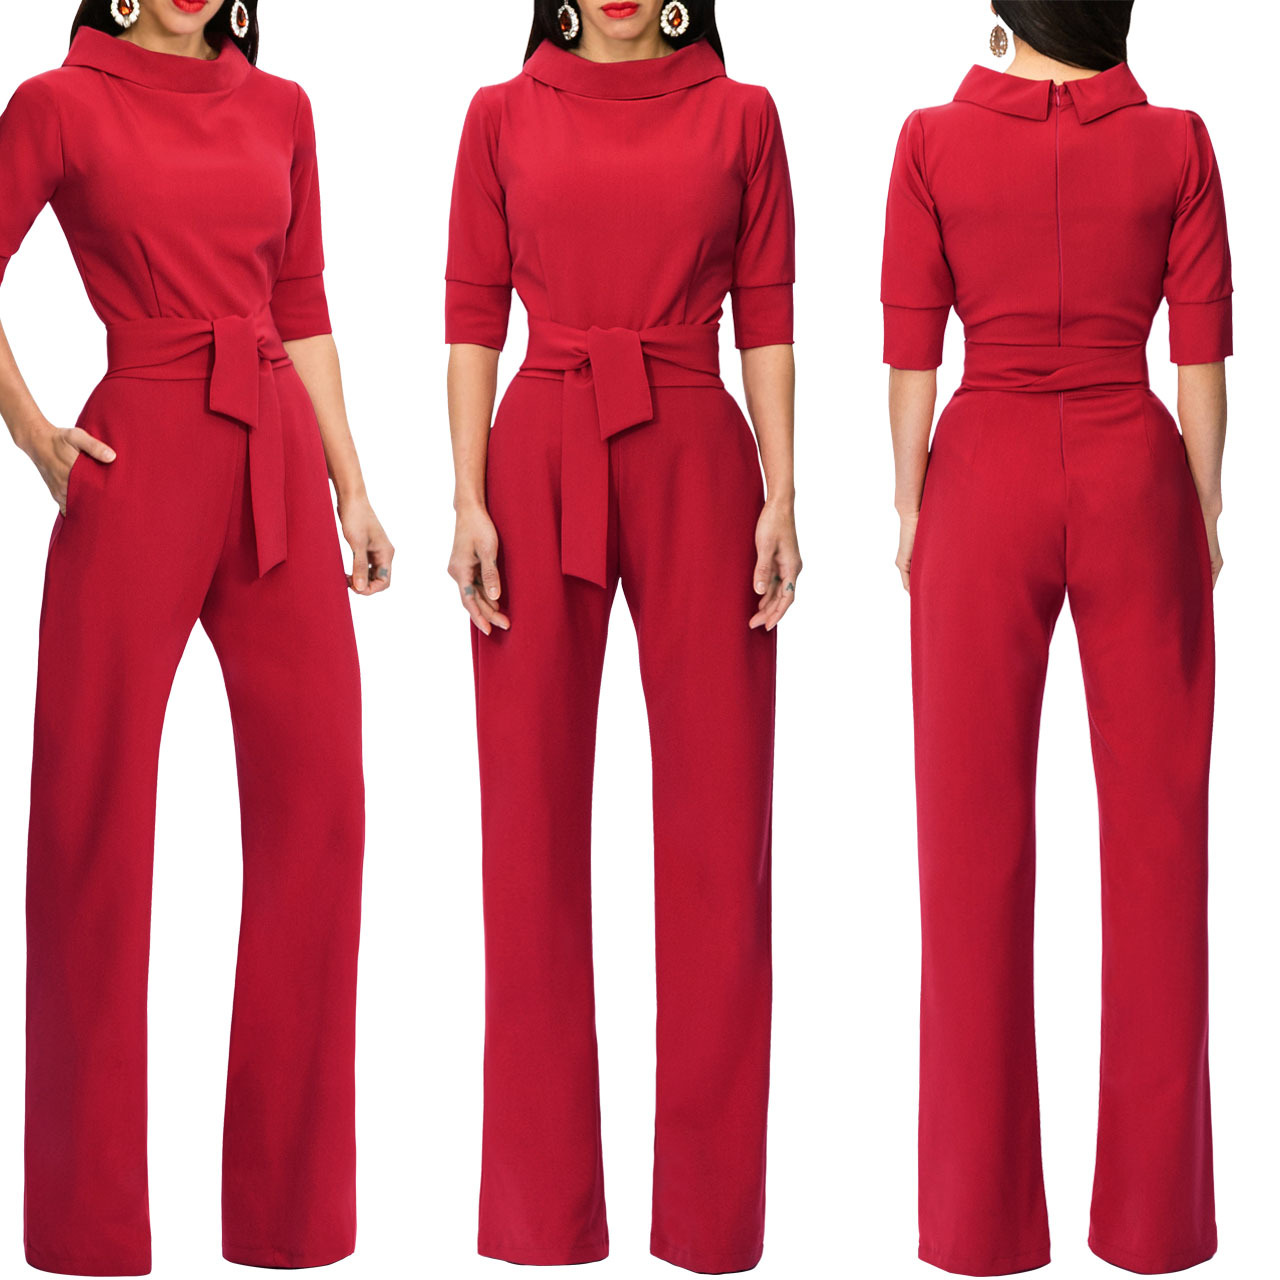 Women Jumpsuit Half Sleeve Stand Collar Belted Casual Wide Leg Pants Office Rompers Overalls red